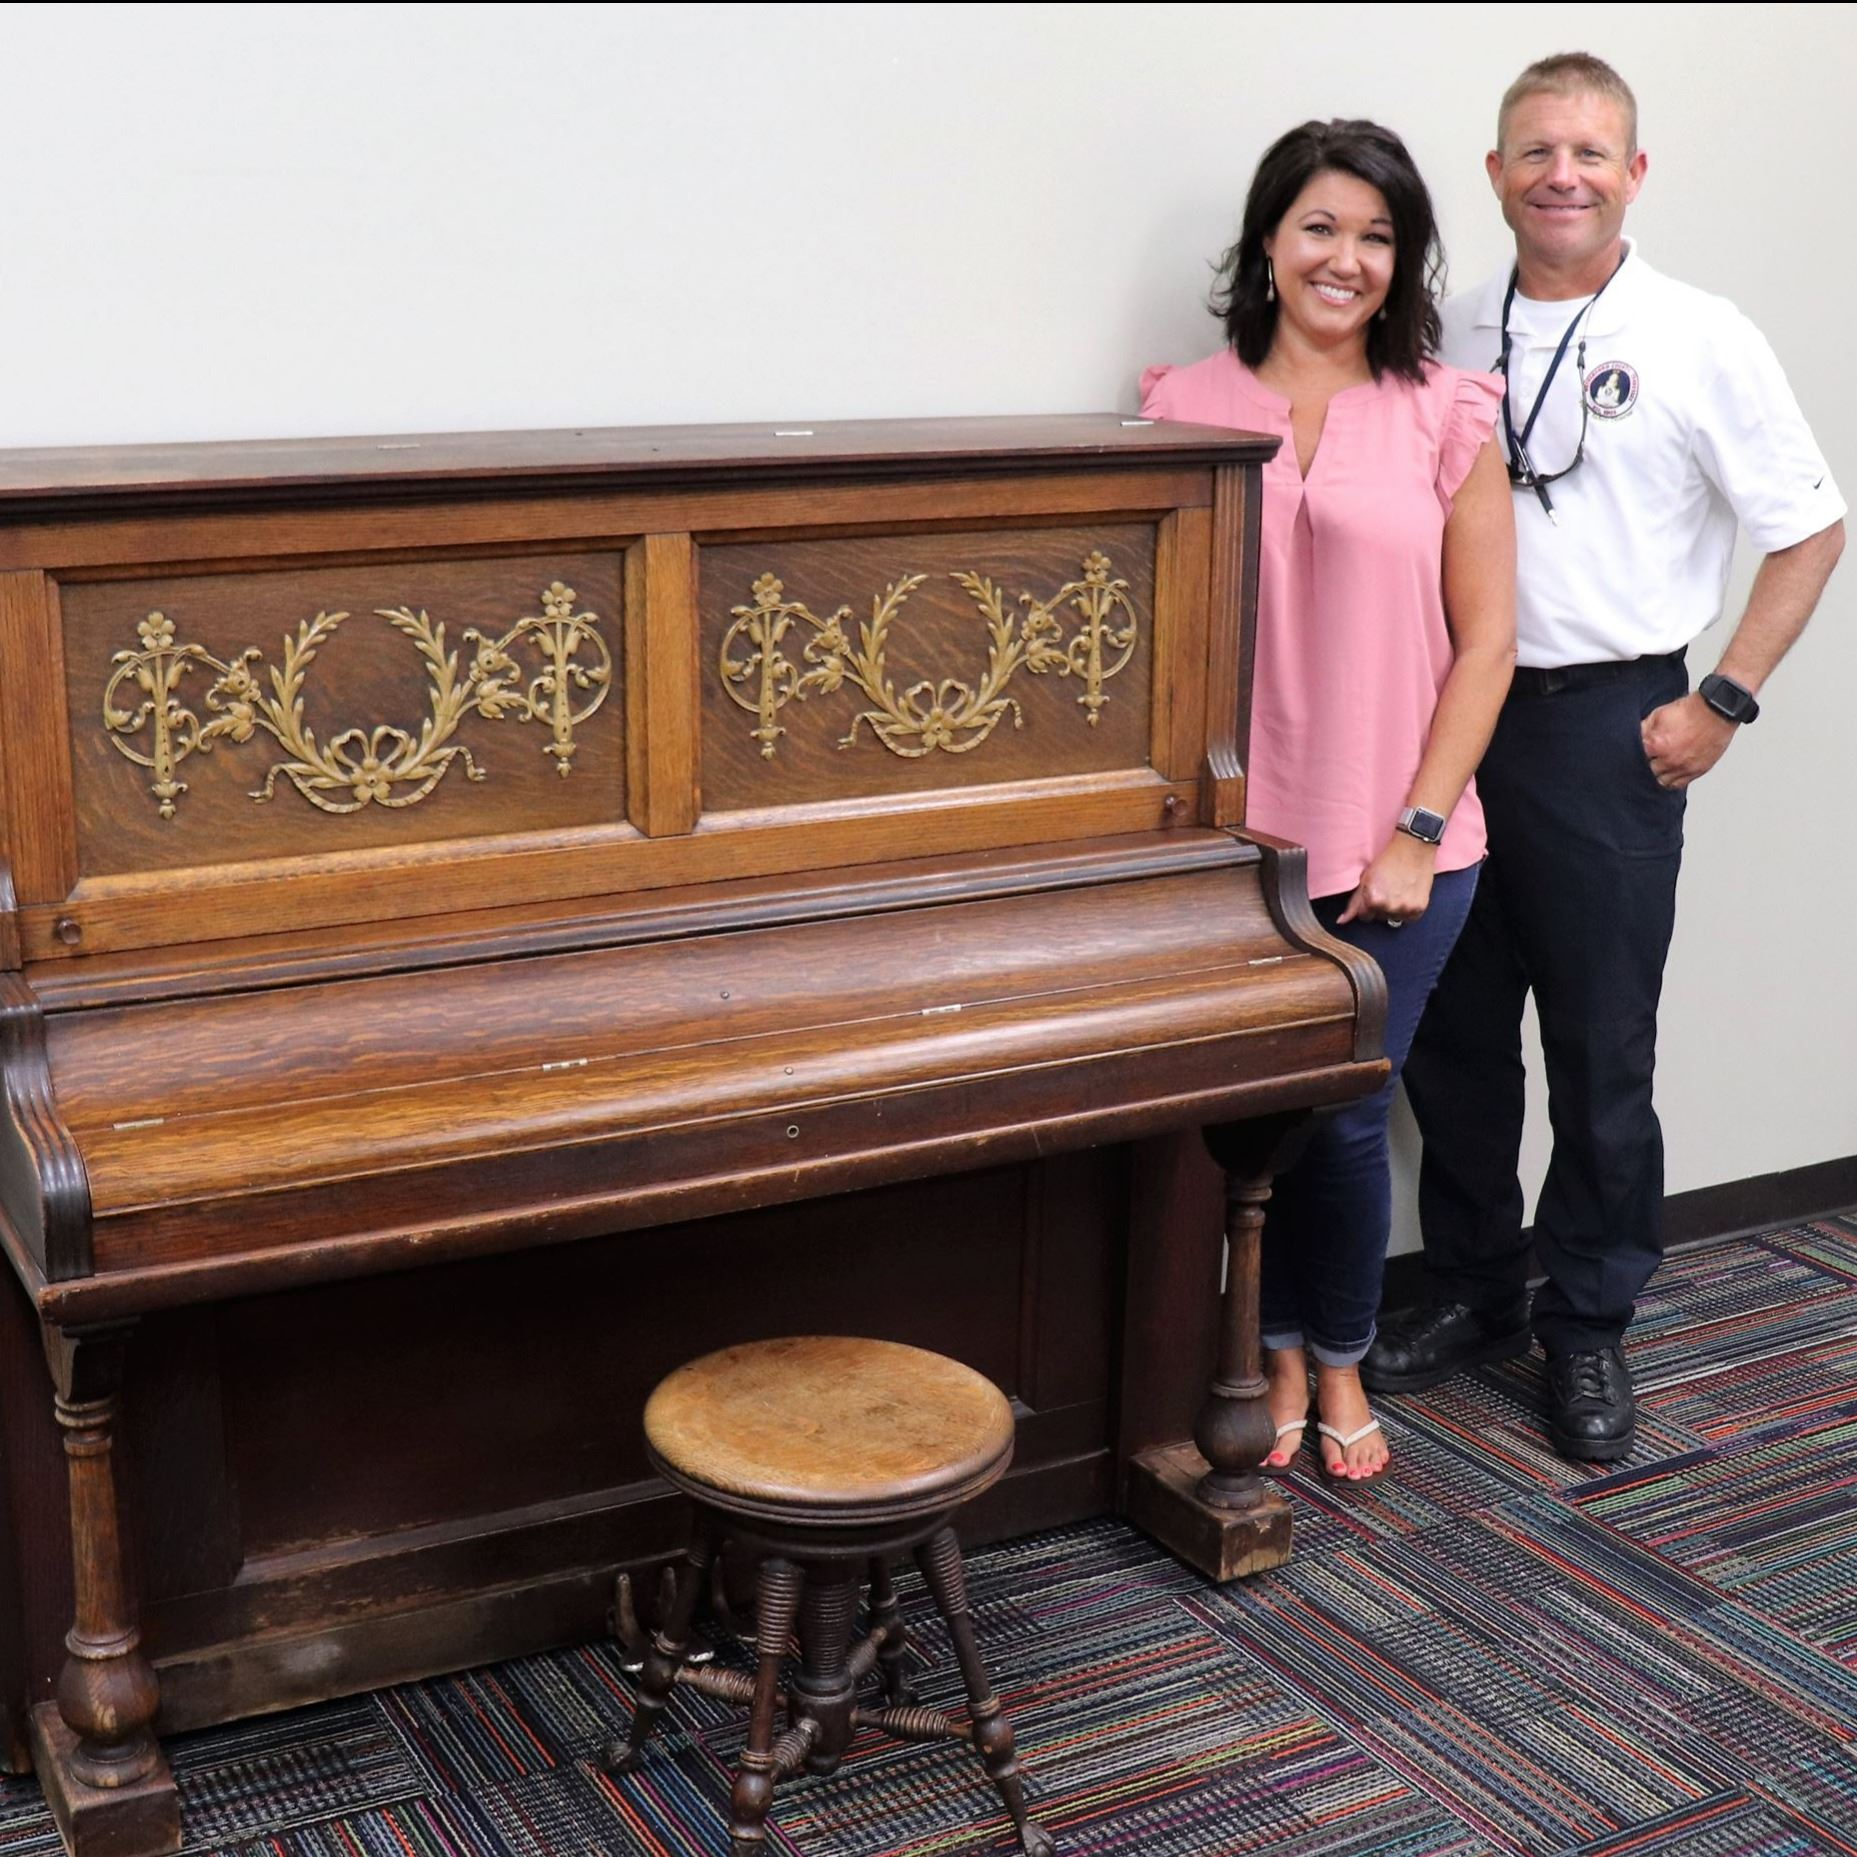 Clark Family Donates Piano to Public Library